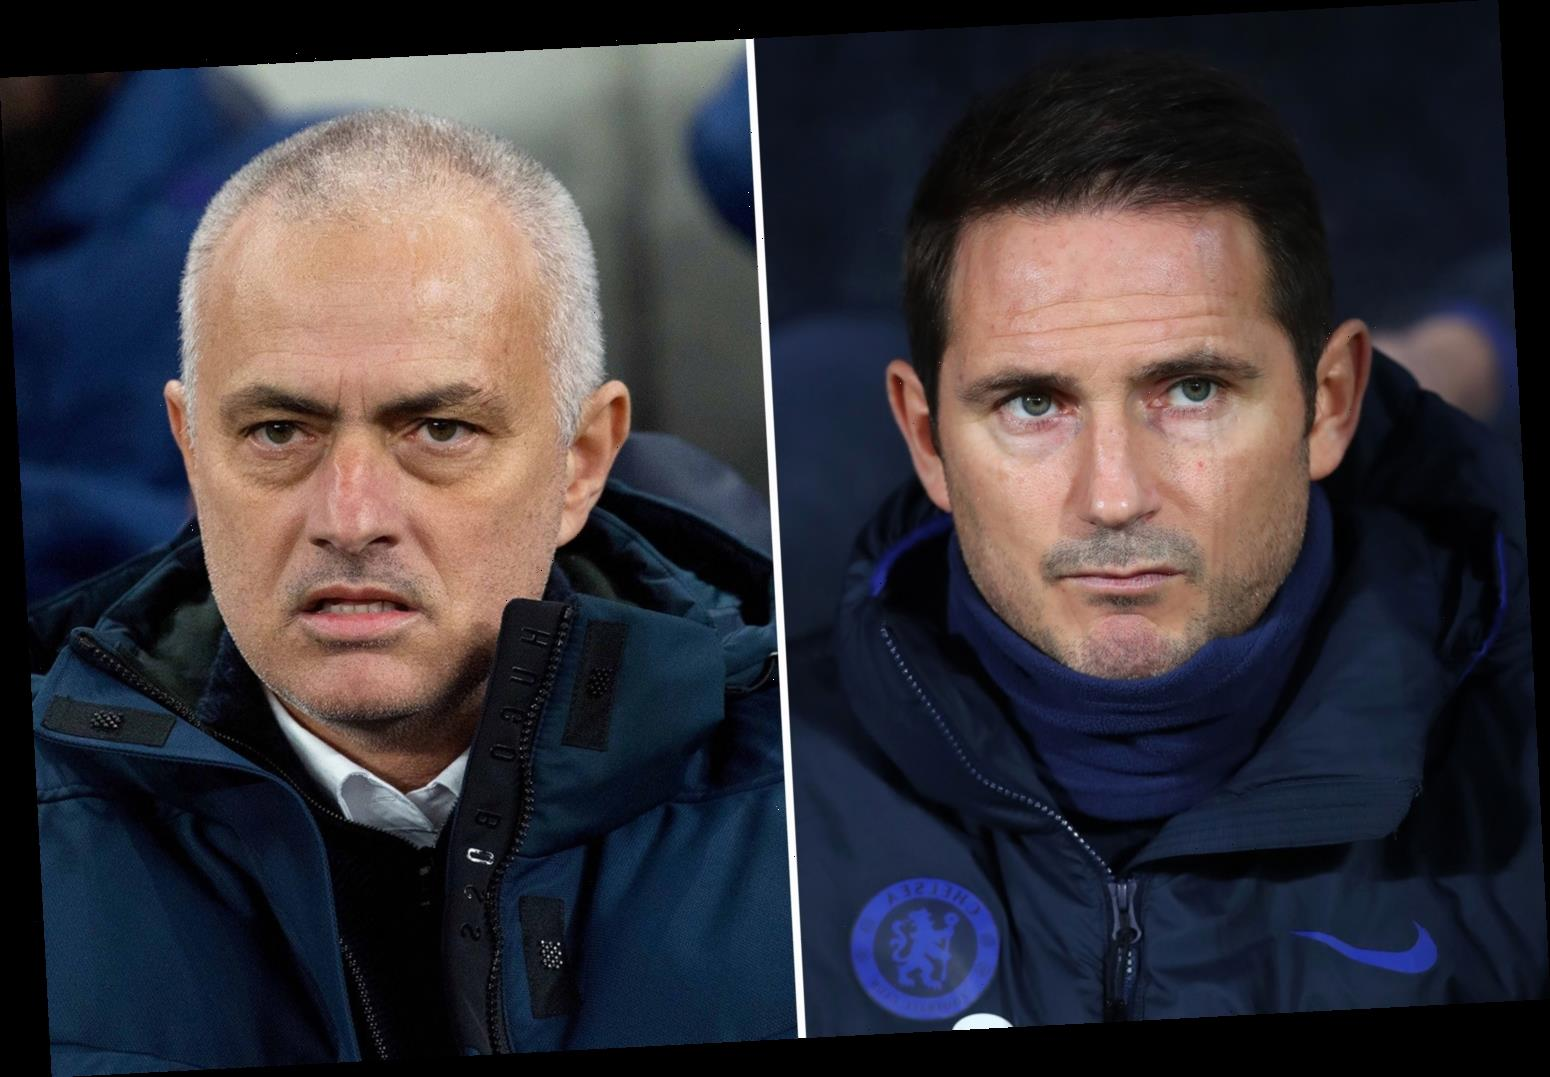 Chelsea boss Lampard refuses to be fooled by Mourinho's claim Tottenham are firing blanks – The Sun